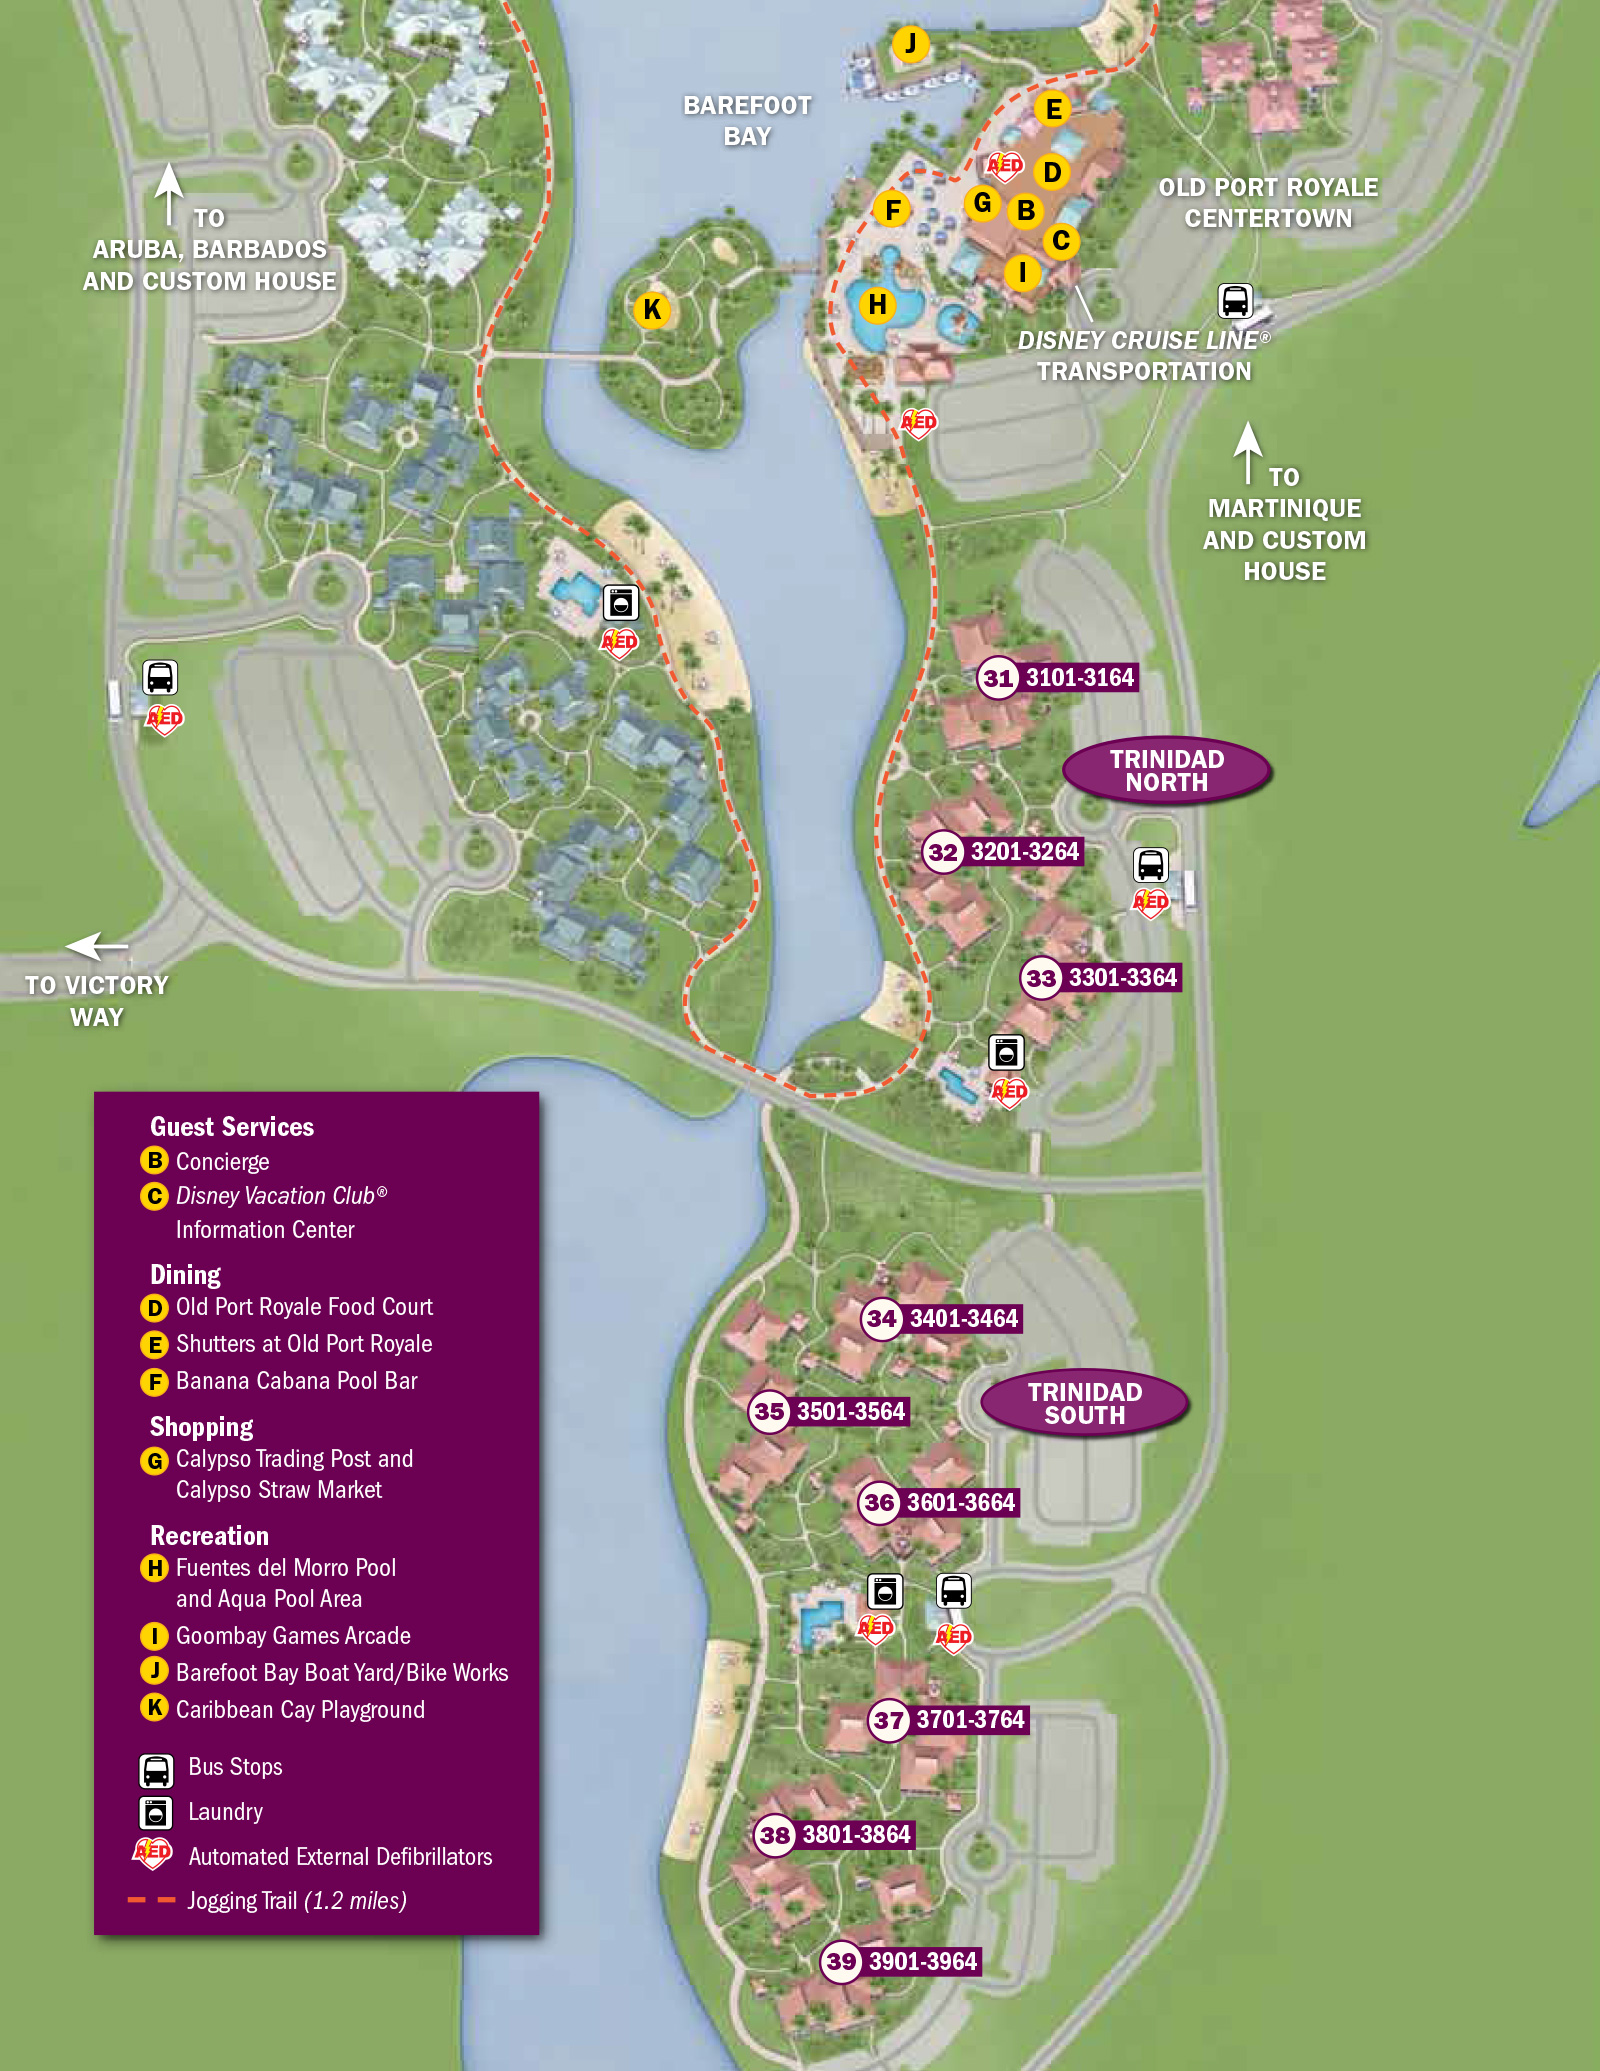 dfb8ffdcb2a8 2013 Caribbean Beach Resort guide map - Photo 6 of 6